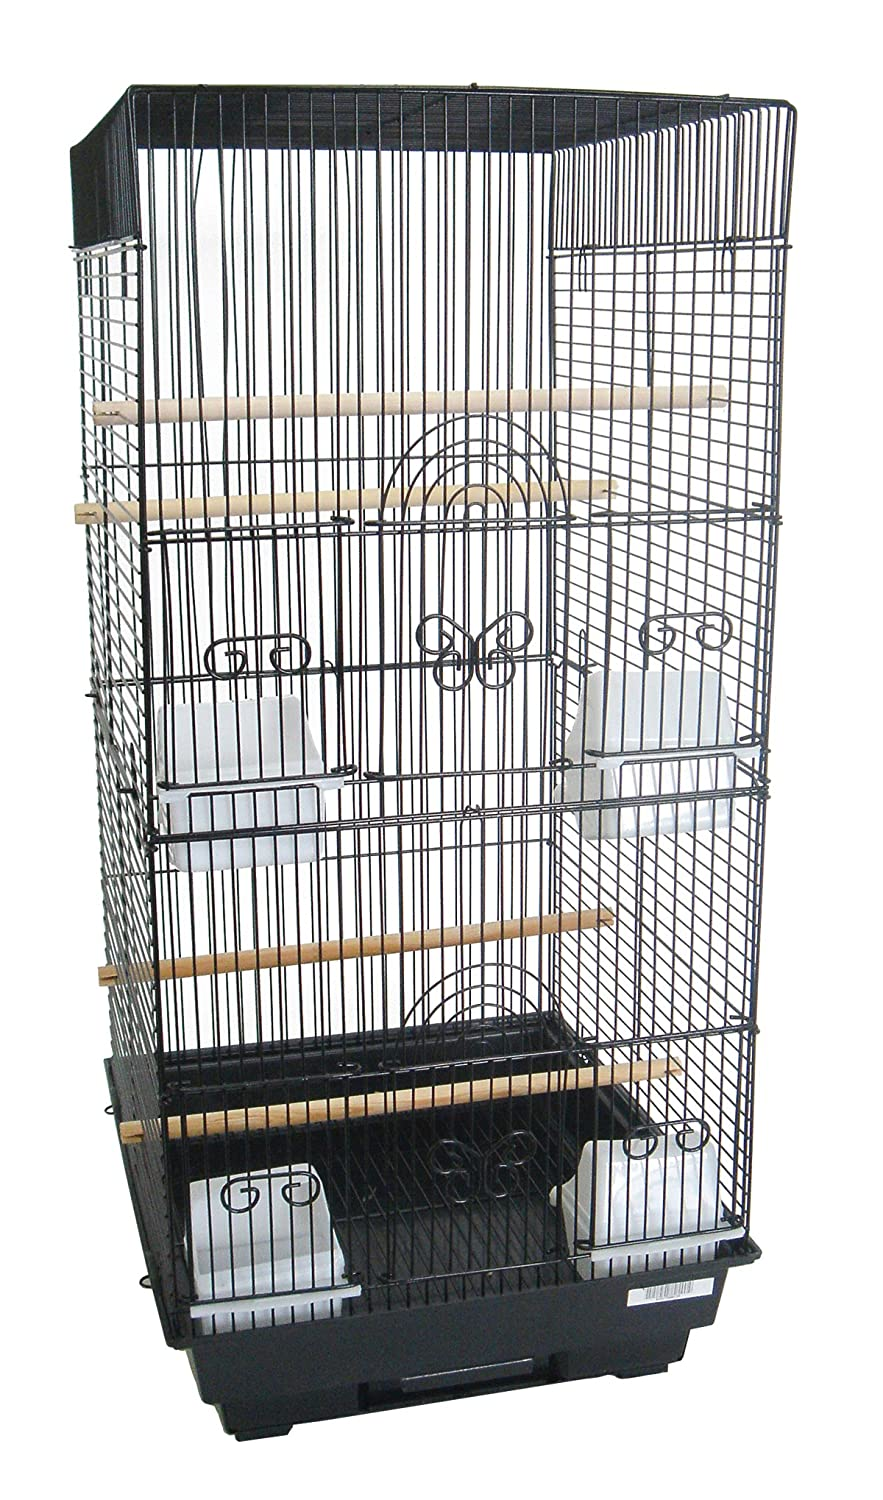 YML A6624 Bar Spacing Tall Square 4 Perches Bird Cage, 14 by 16-Inch, Black A6624BLK